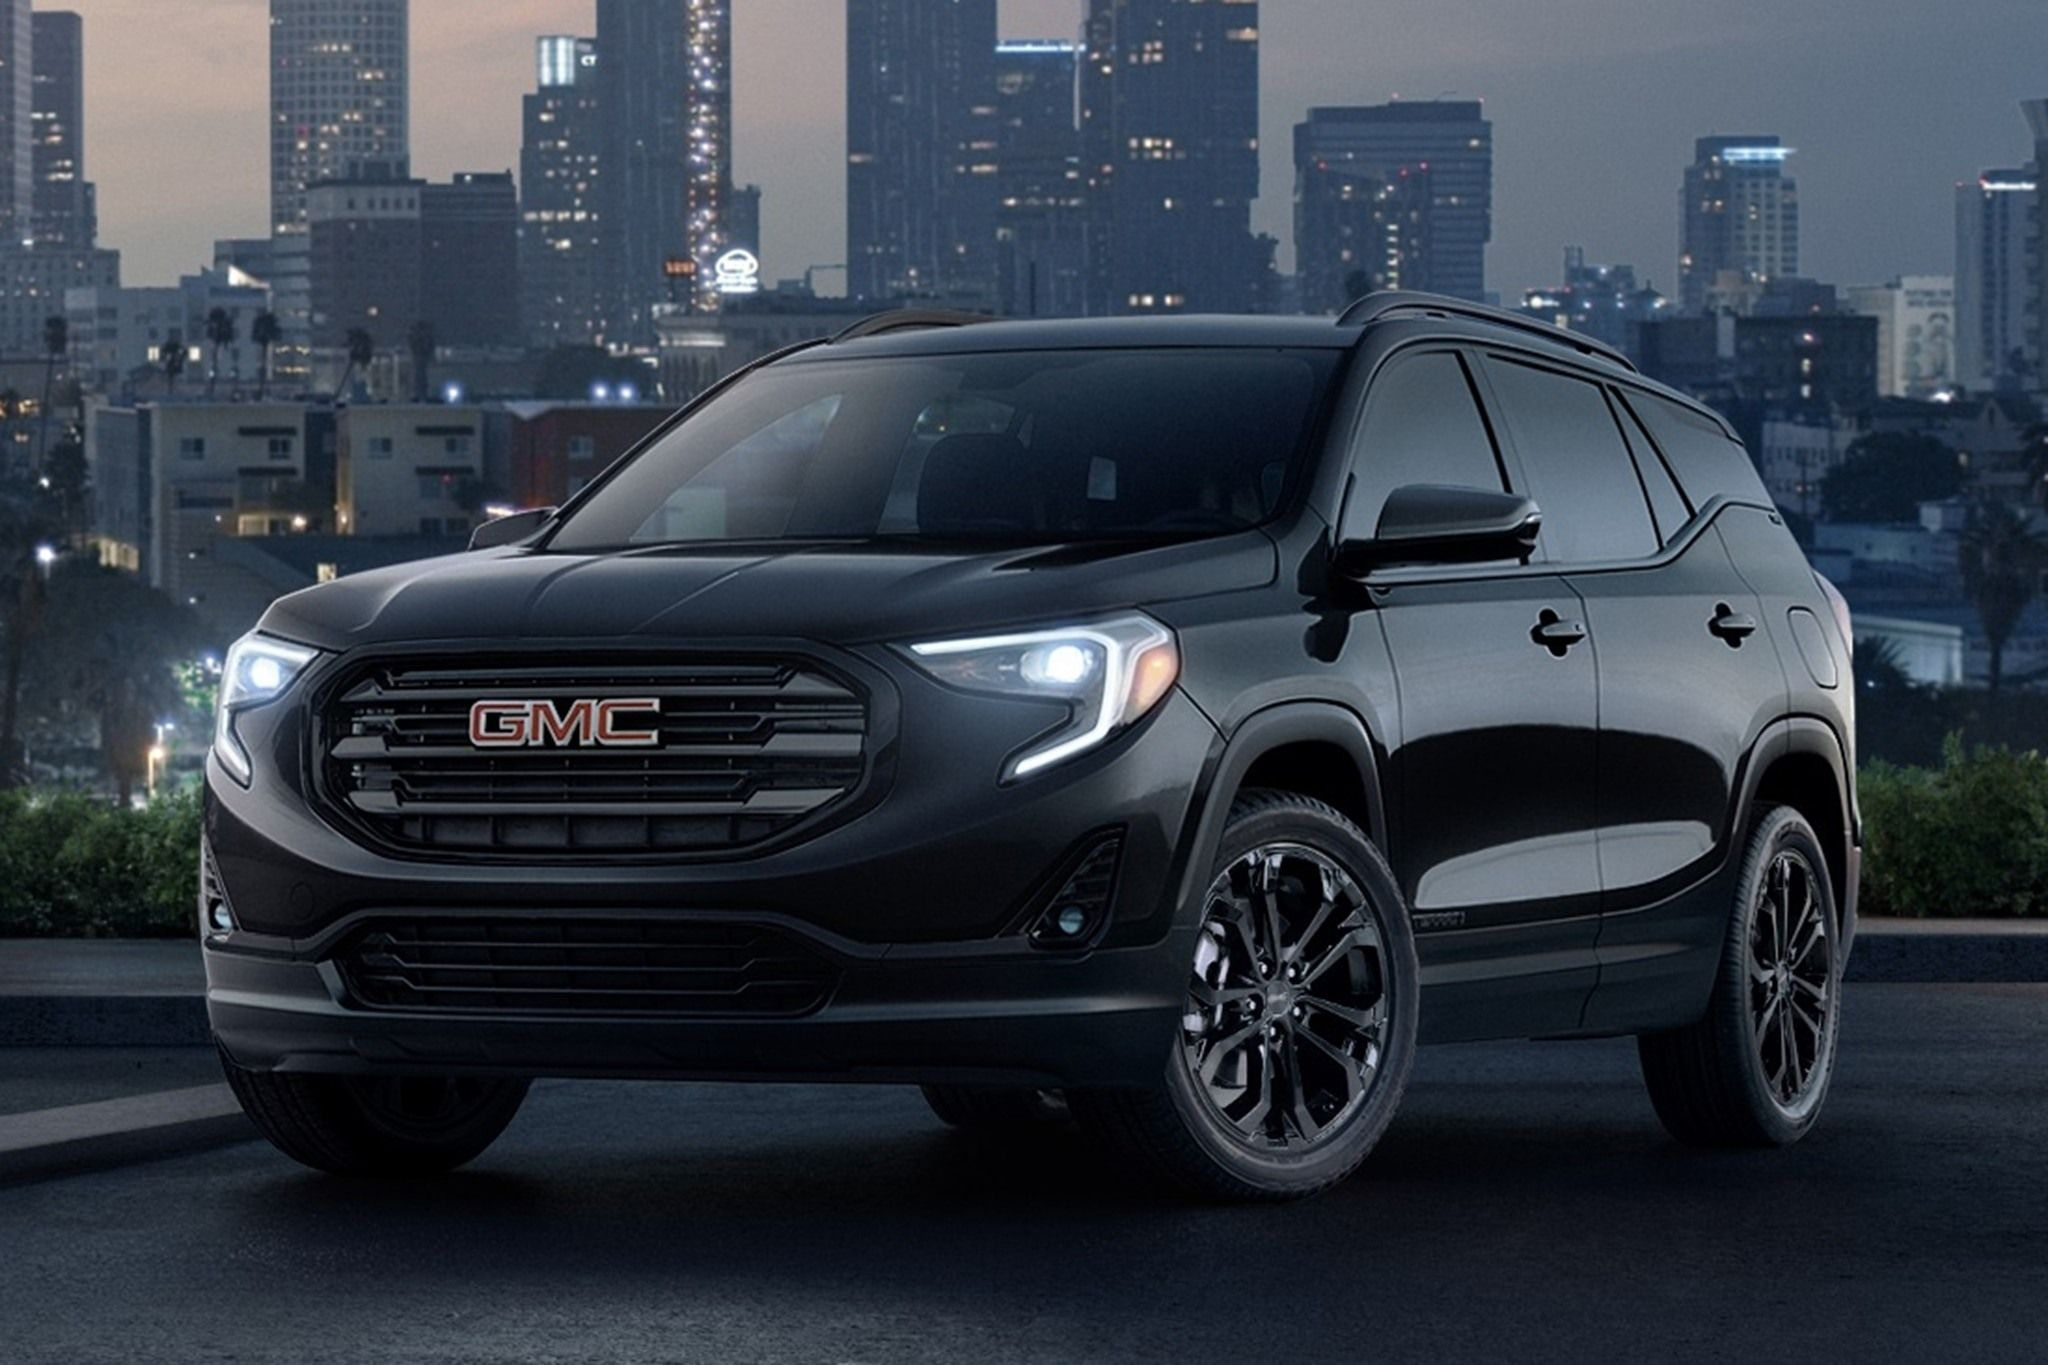 2019 Gmc Acadia Exterior And Interior Review Gmc Trucks Gmc Terrain Gmc